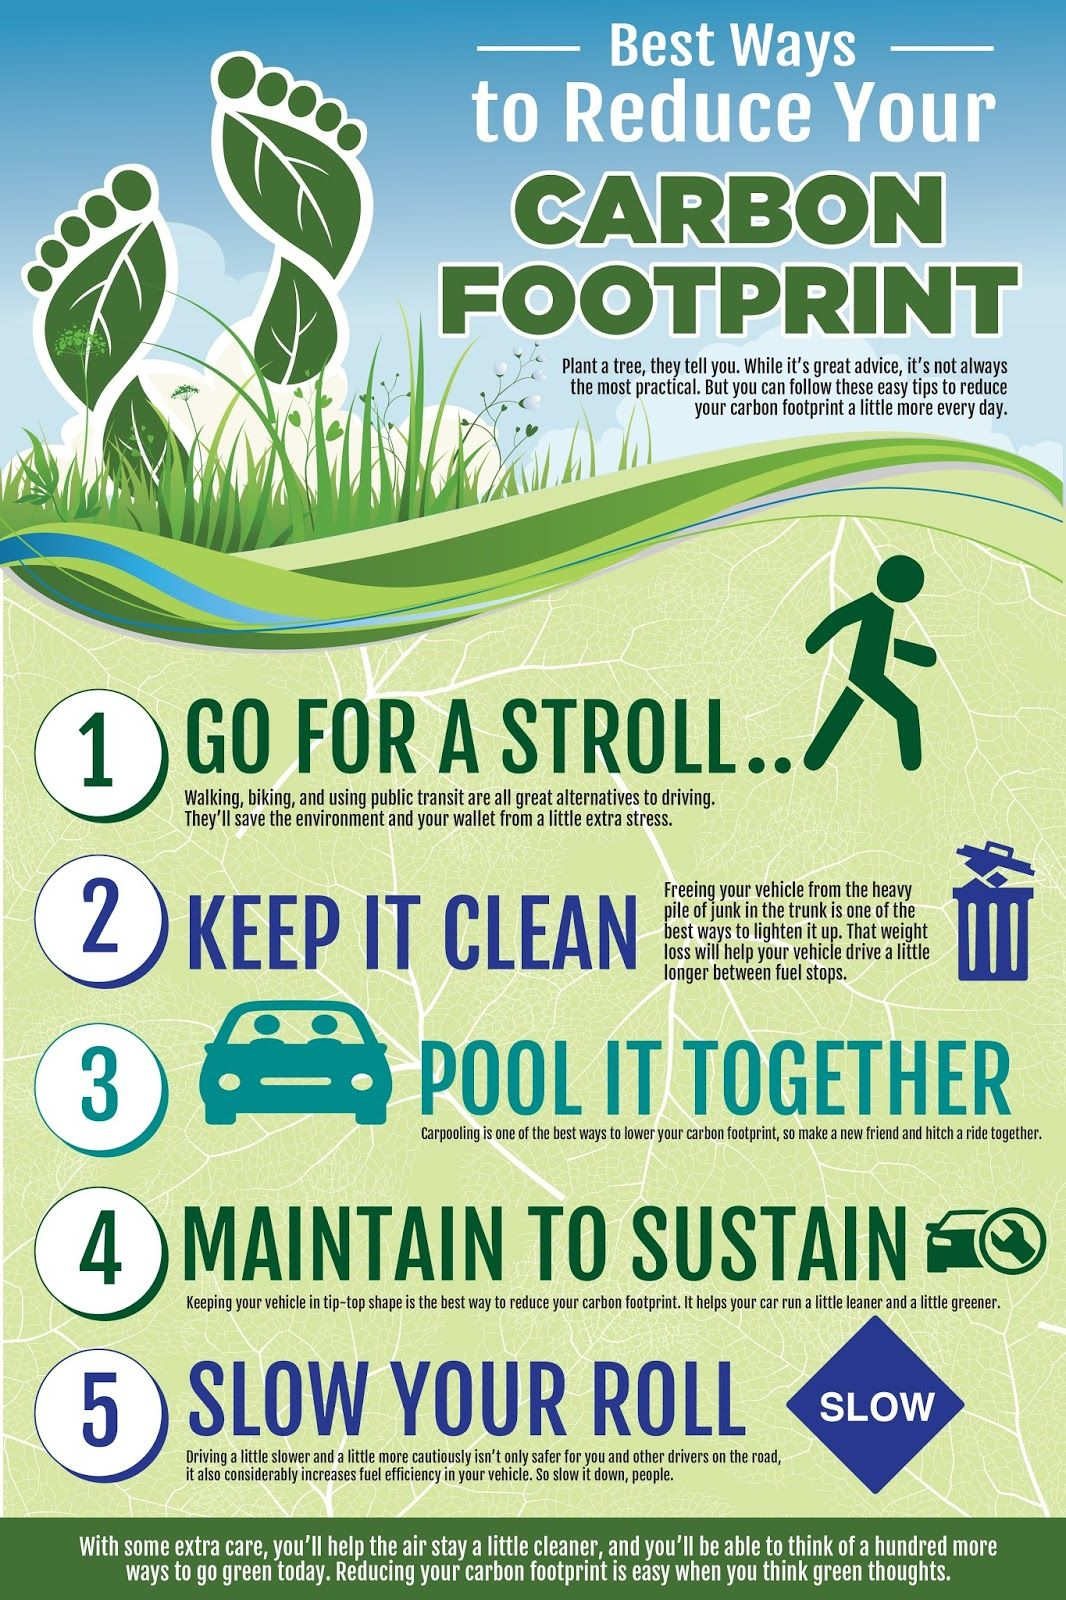 Best Ways To Reduce Your Carbon Footprint Earthmonth Gogreen Carbon Footprint Reducing Carbon Footprint Environmentally Friendly Living